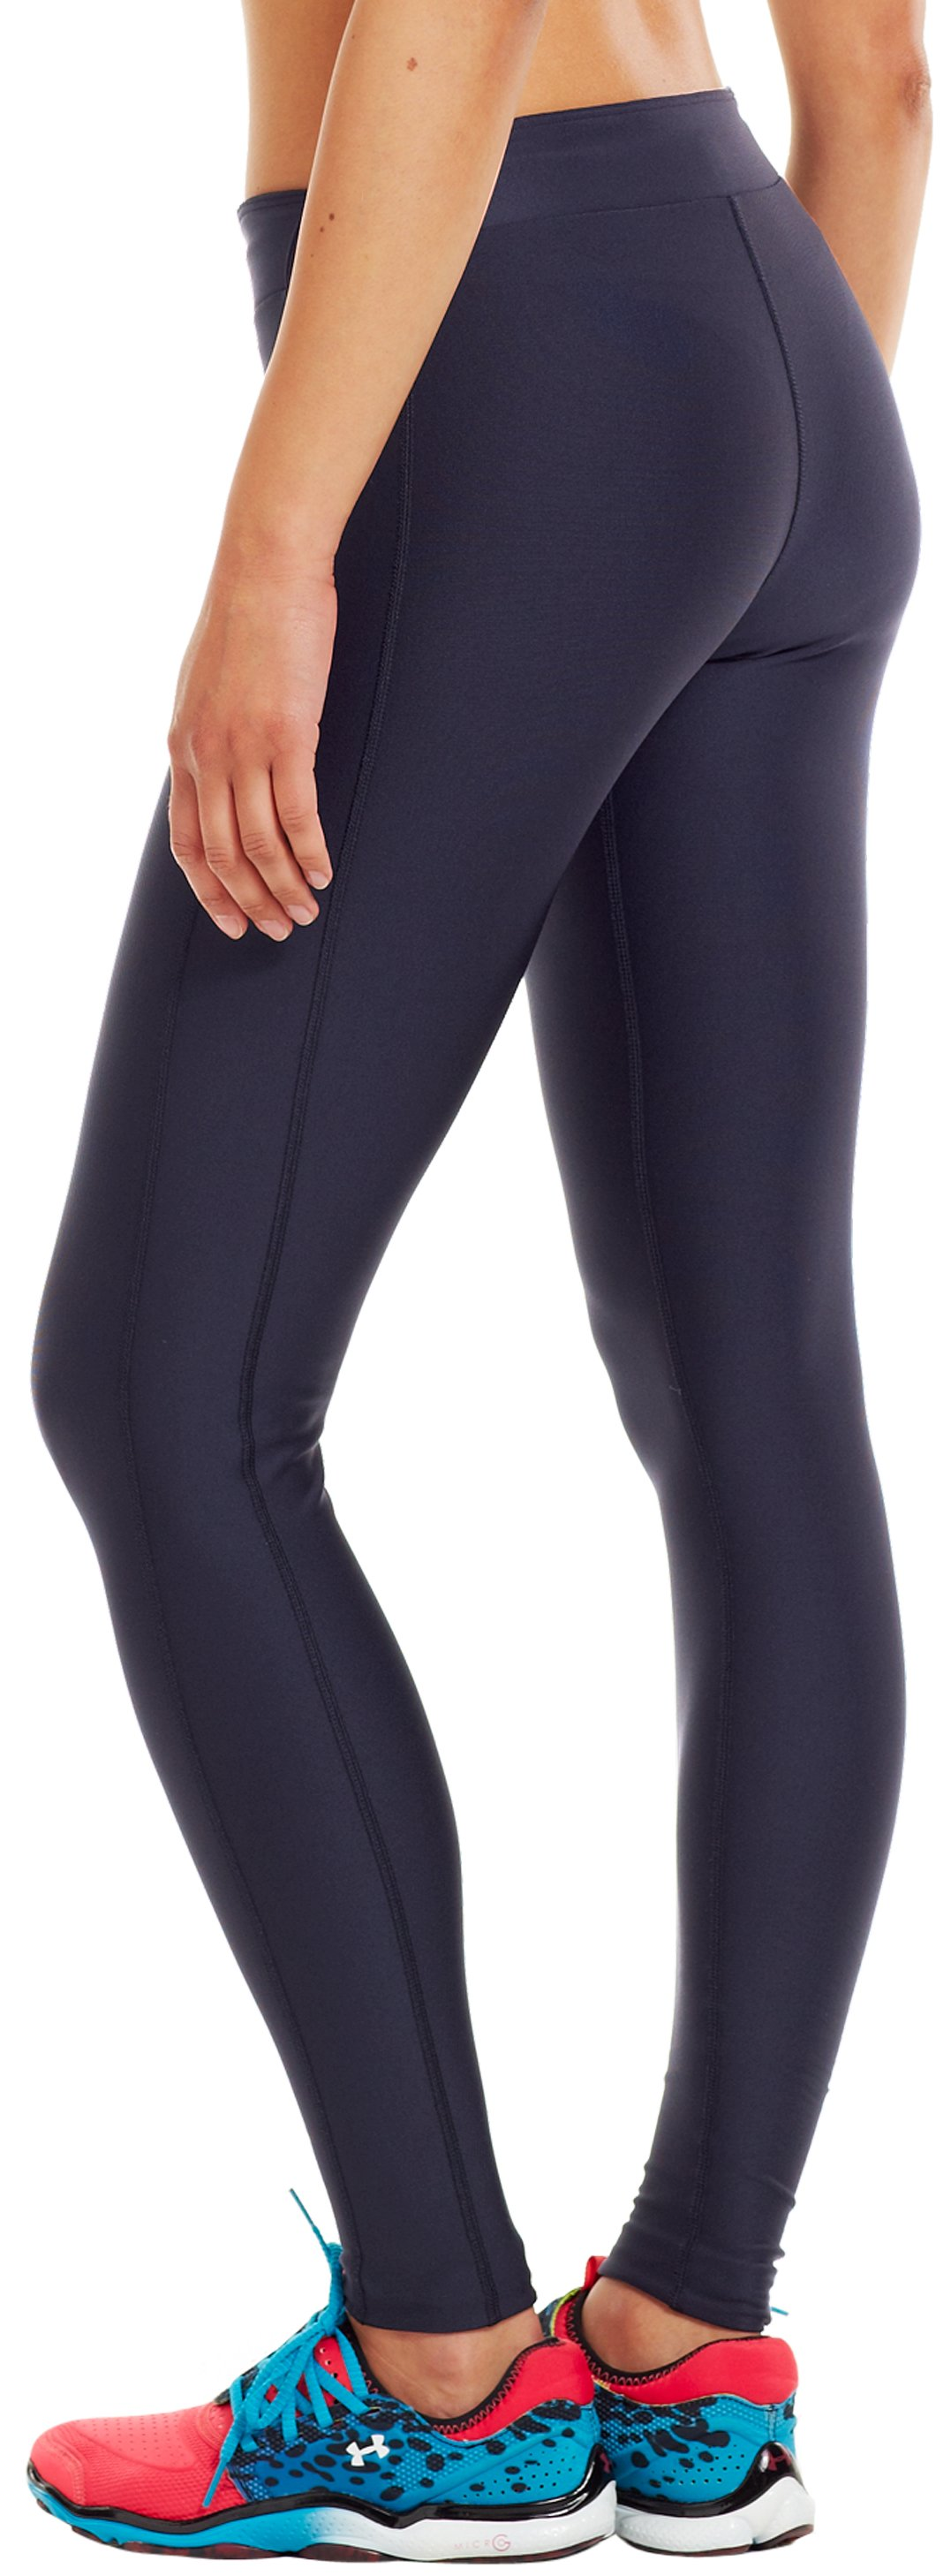 Popular Worn Alone Or As A Baselayer, The Under Armour&174 Womens HeatGear&174 Armour Compression Shorts Are Built For Performance Moisturewicking Fabrics Keep You Cool When You Work Up A Sweat, While Antiodor Technology Keeps Your